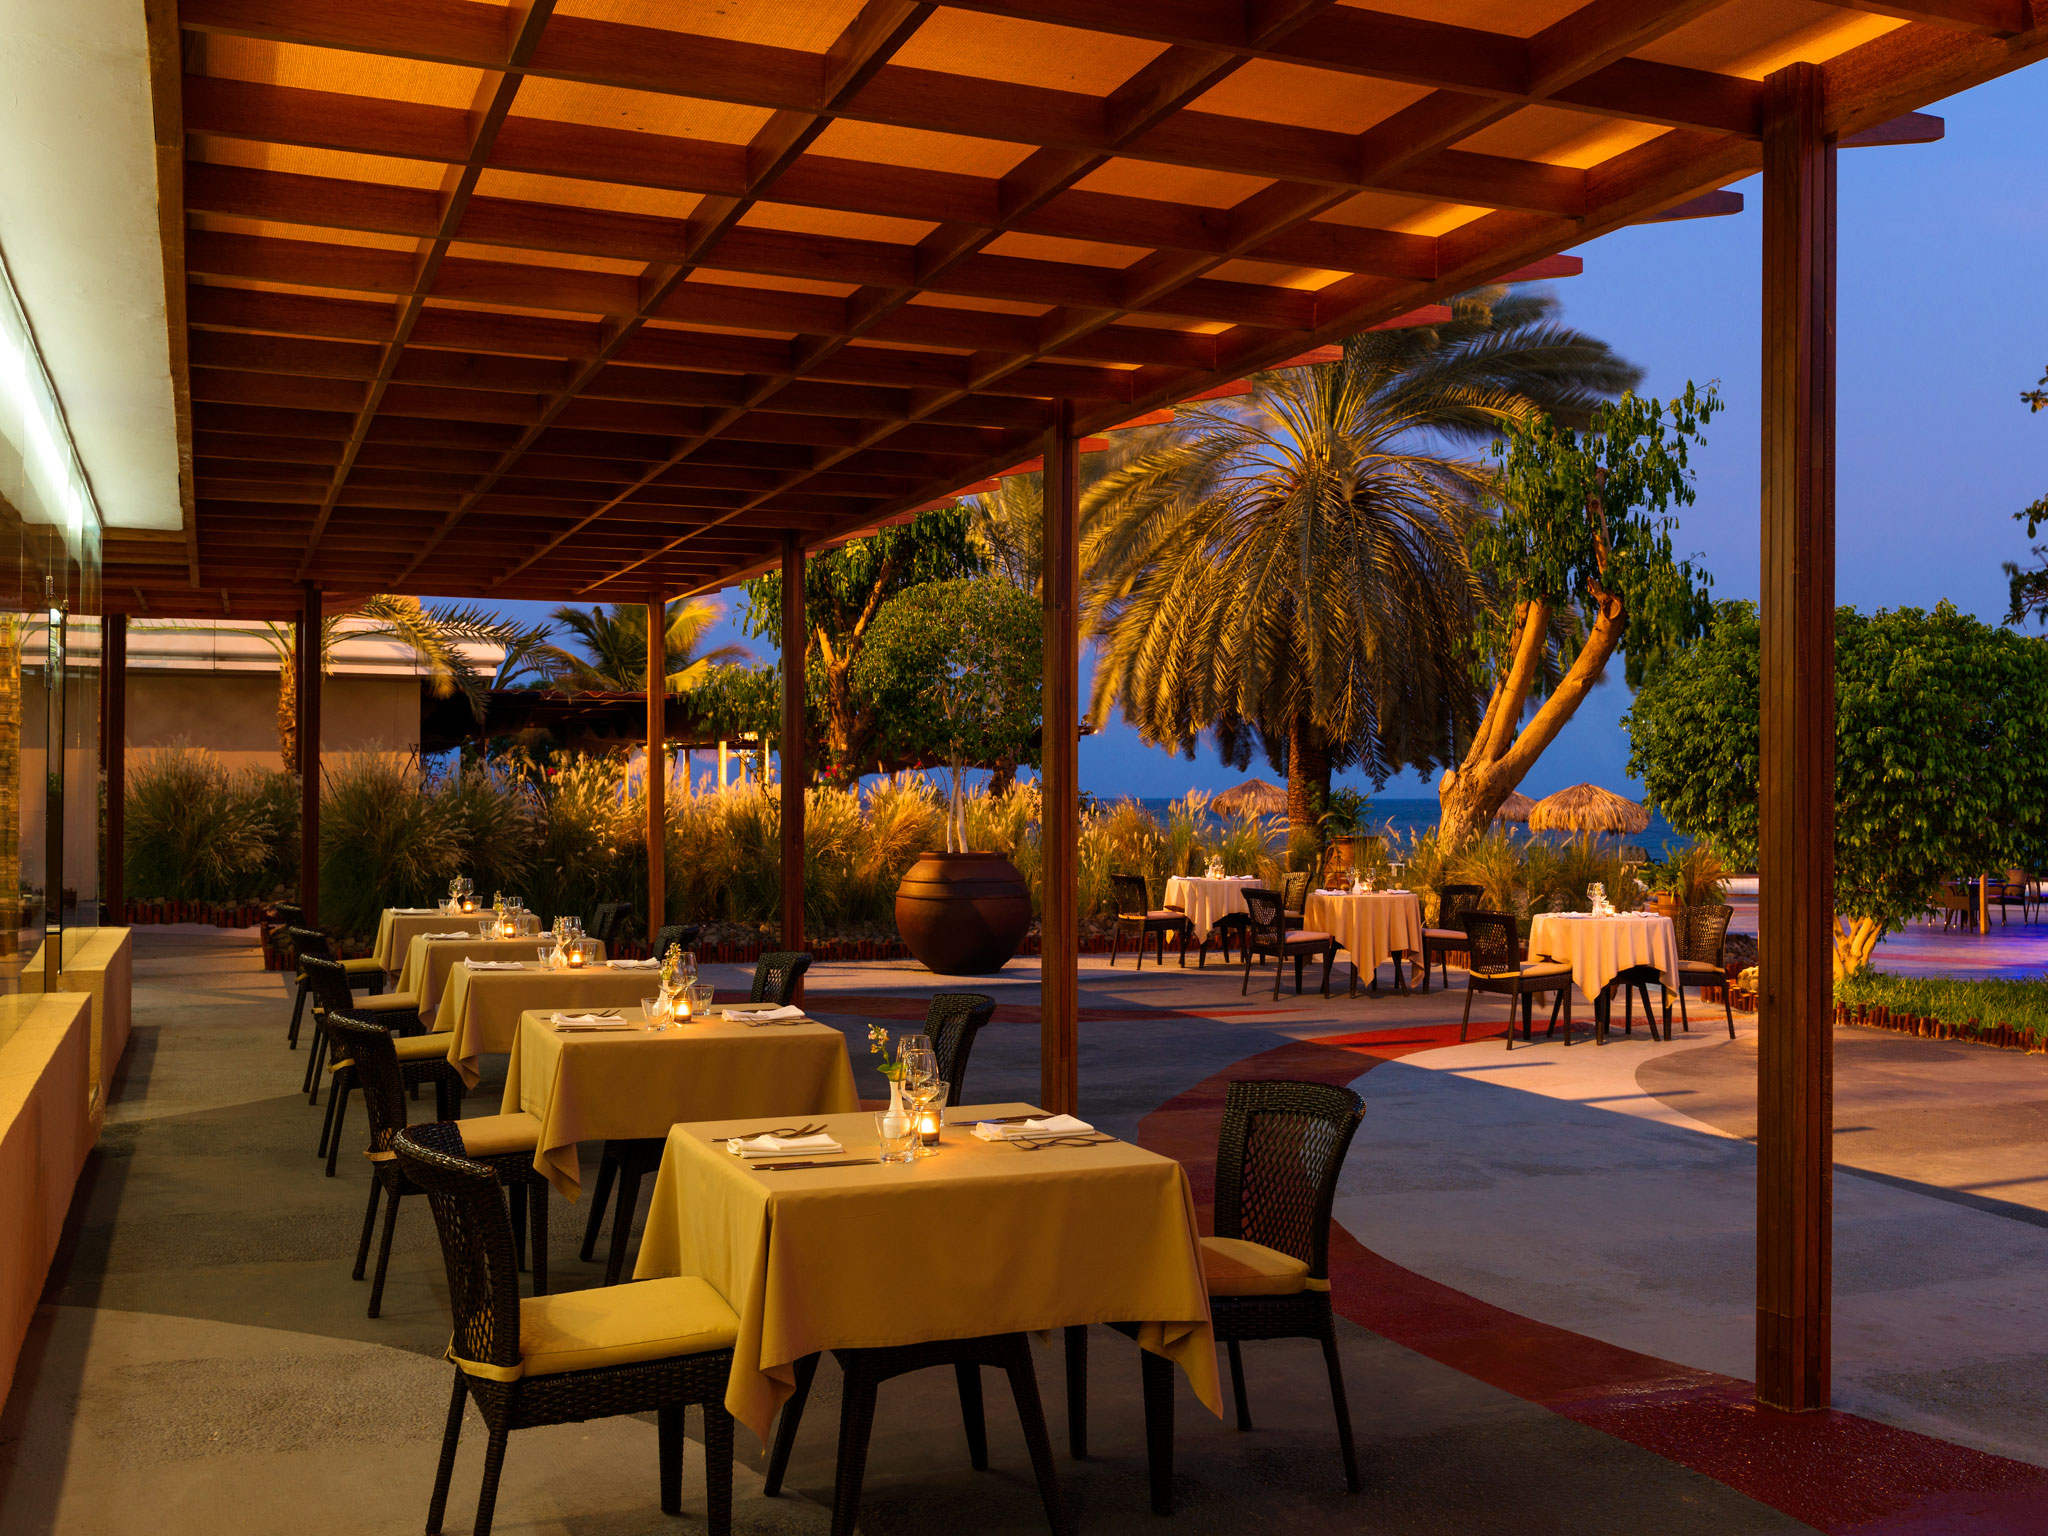 Sheraton Djibouti Hotel Dining situated on the Terrace.